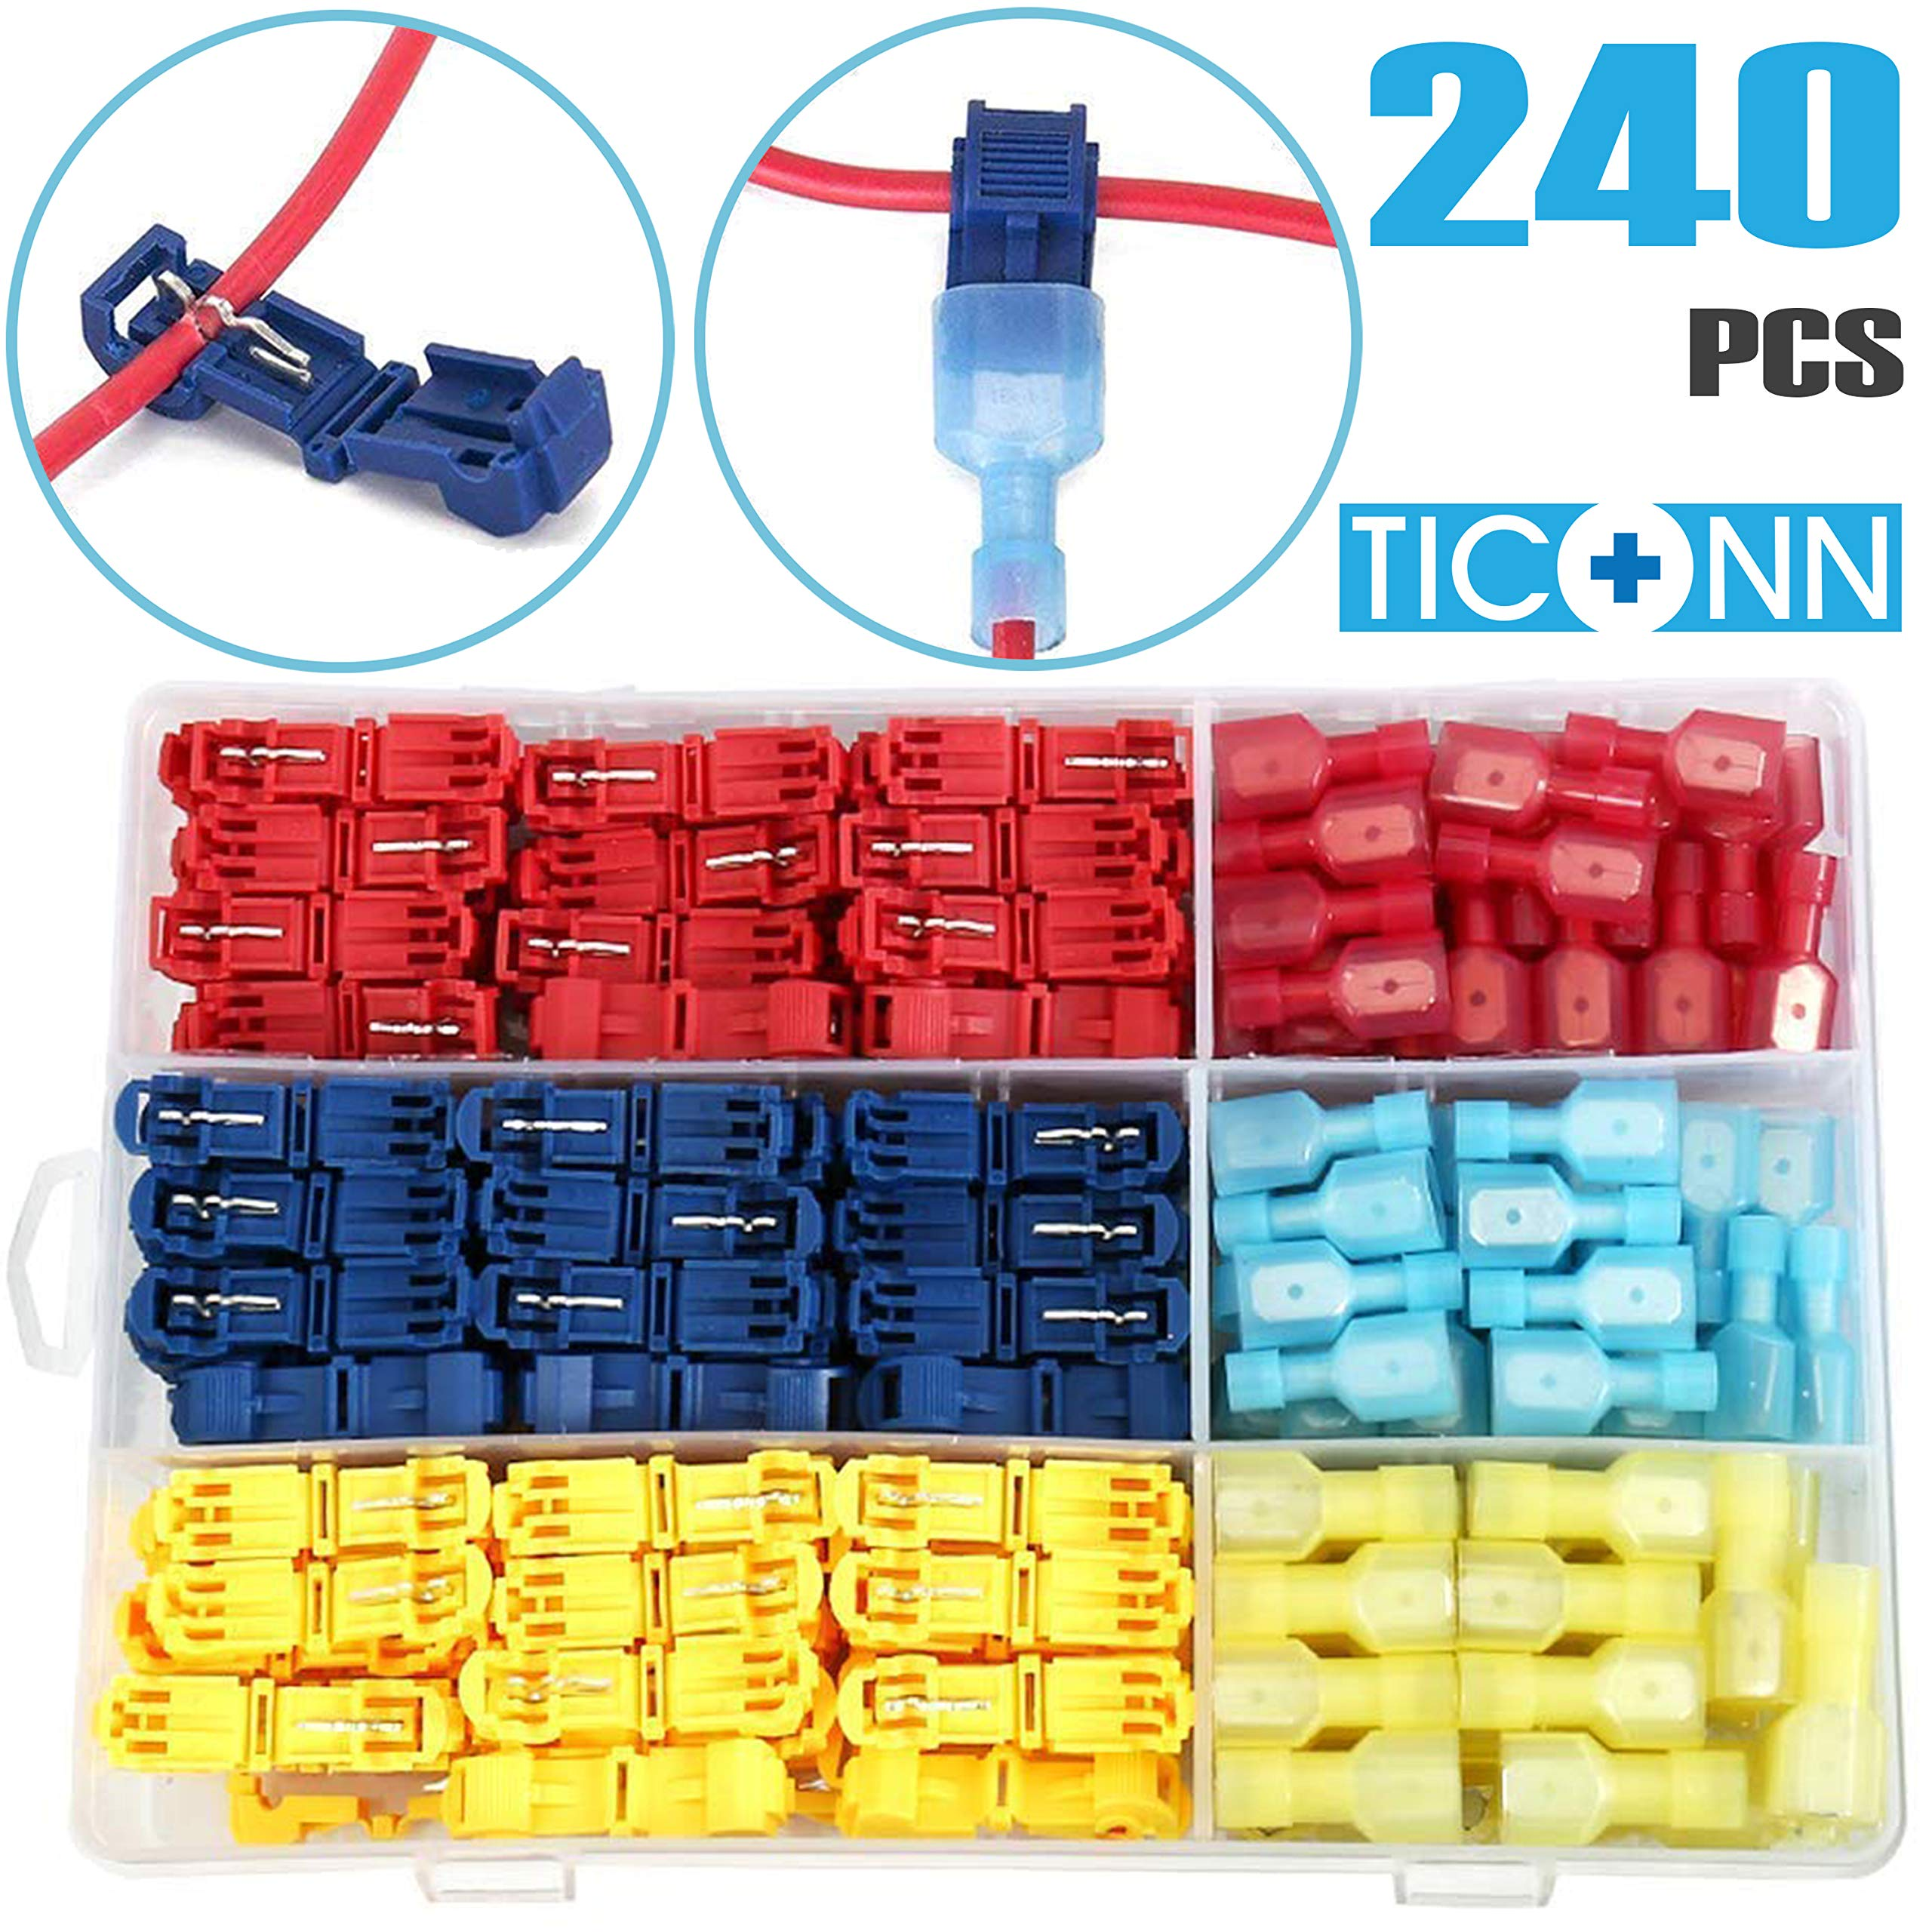 TICONN 240pcs T-Tap Wire Connectors, Self-Stripping Quick Splice Electrical Wire Terminals, Insulated Male Quick Disconnect Spade Terminals Assortment Kit with Storage Case